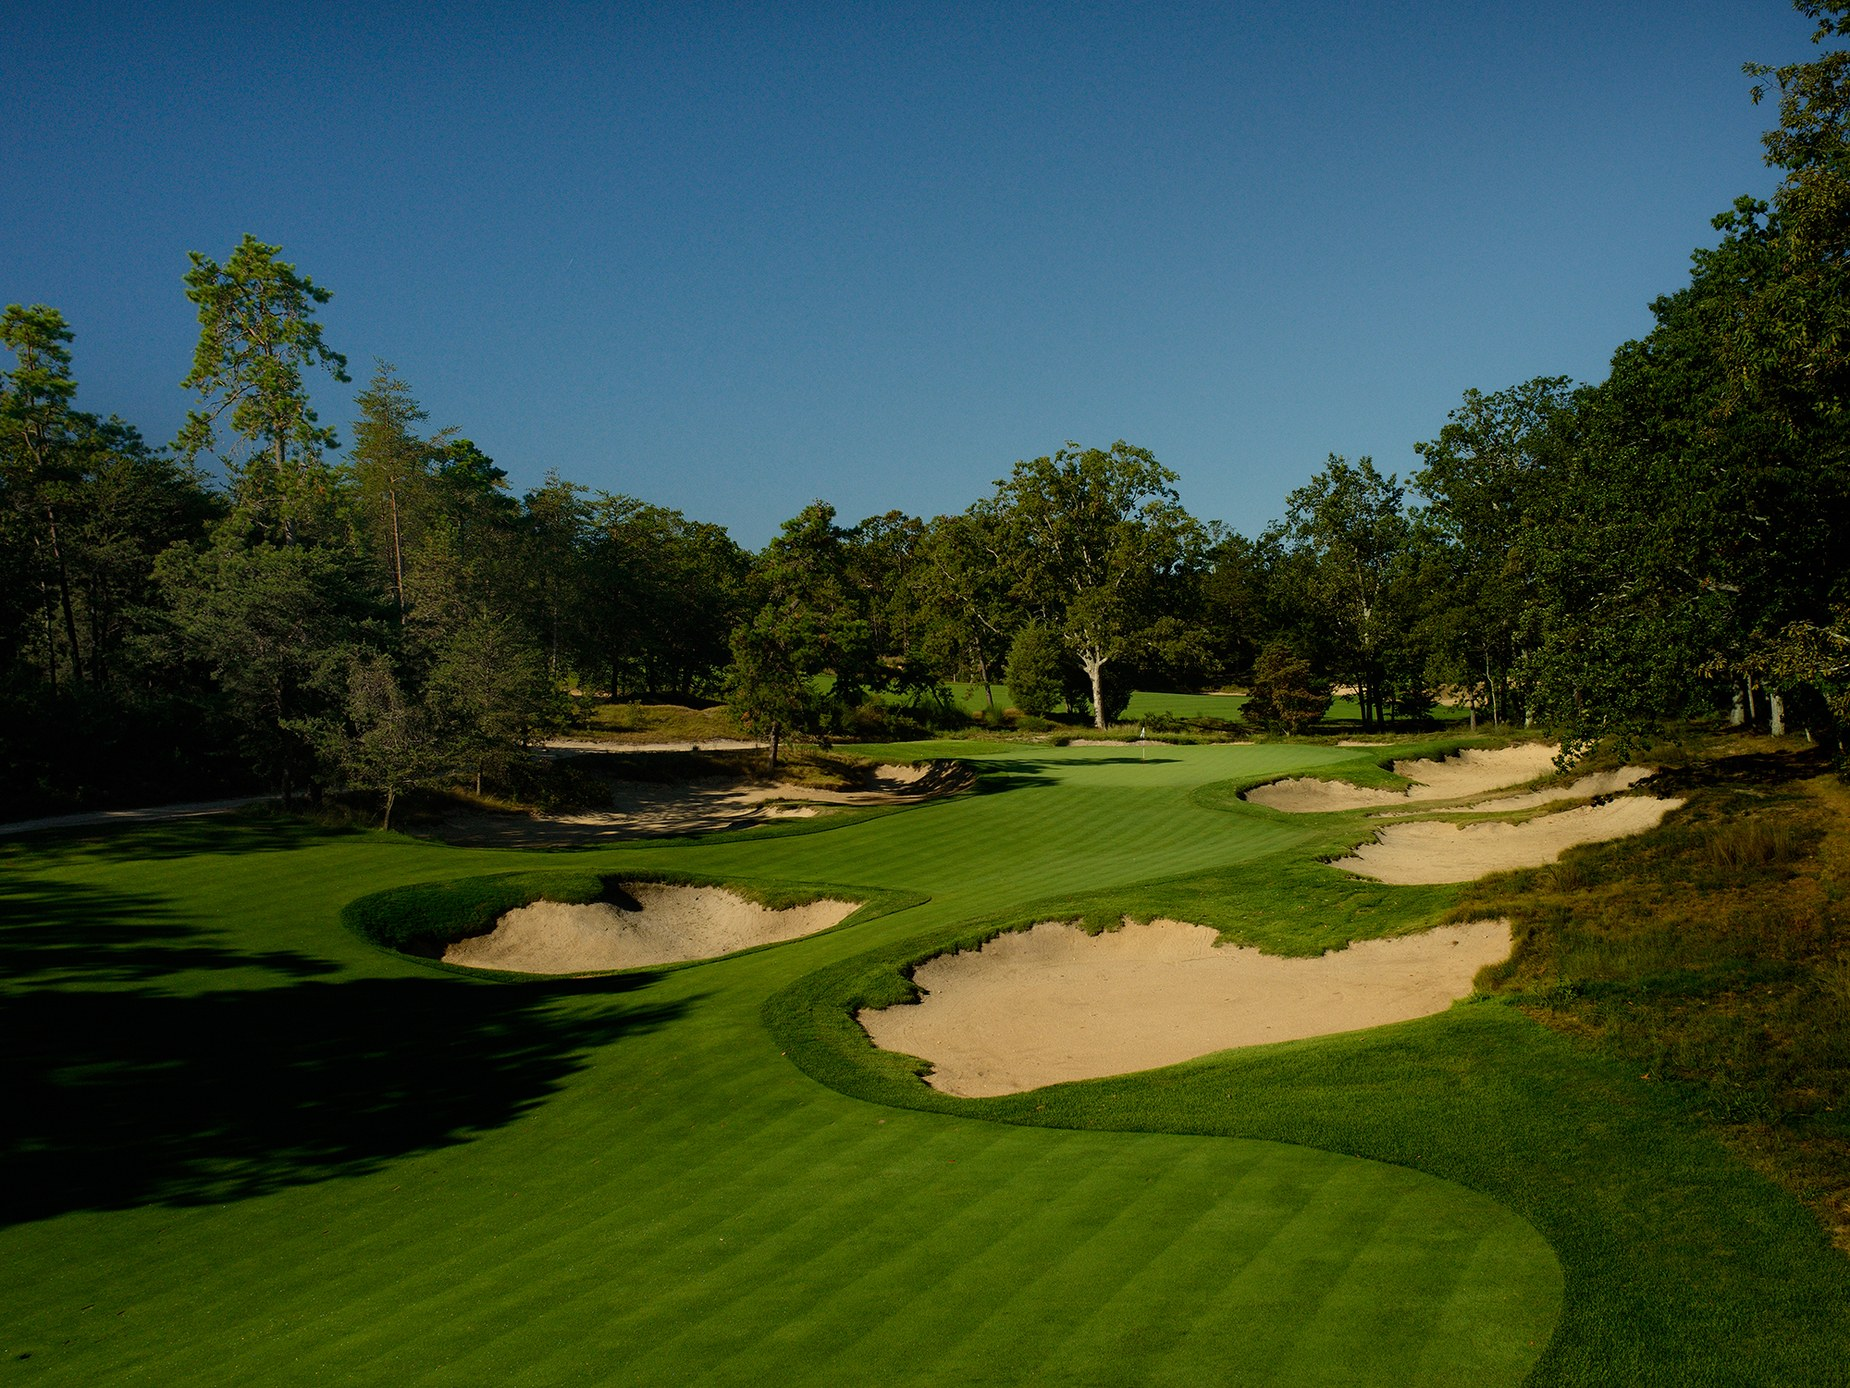 Overview of golf course named Pine Valley Golf Club